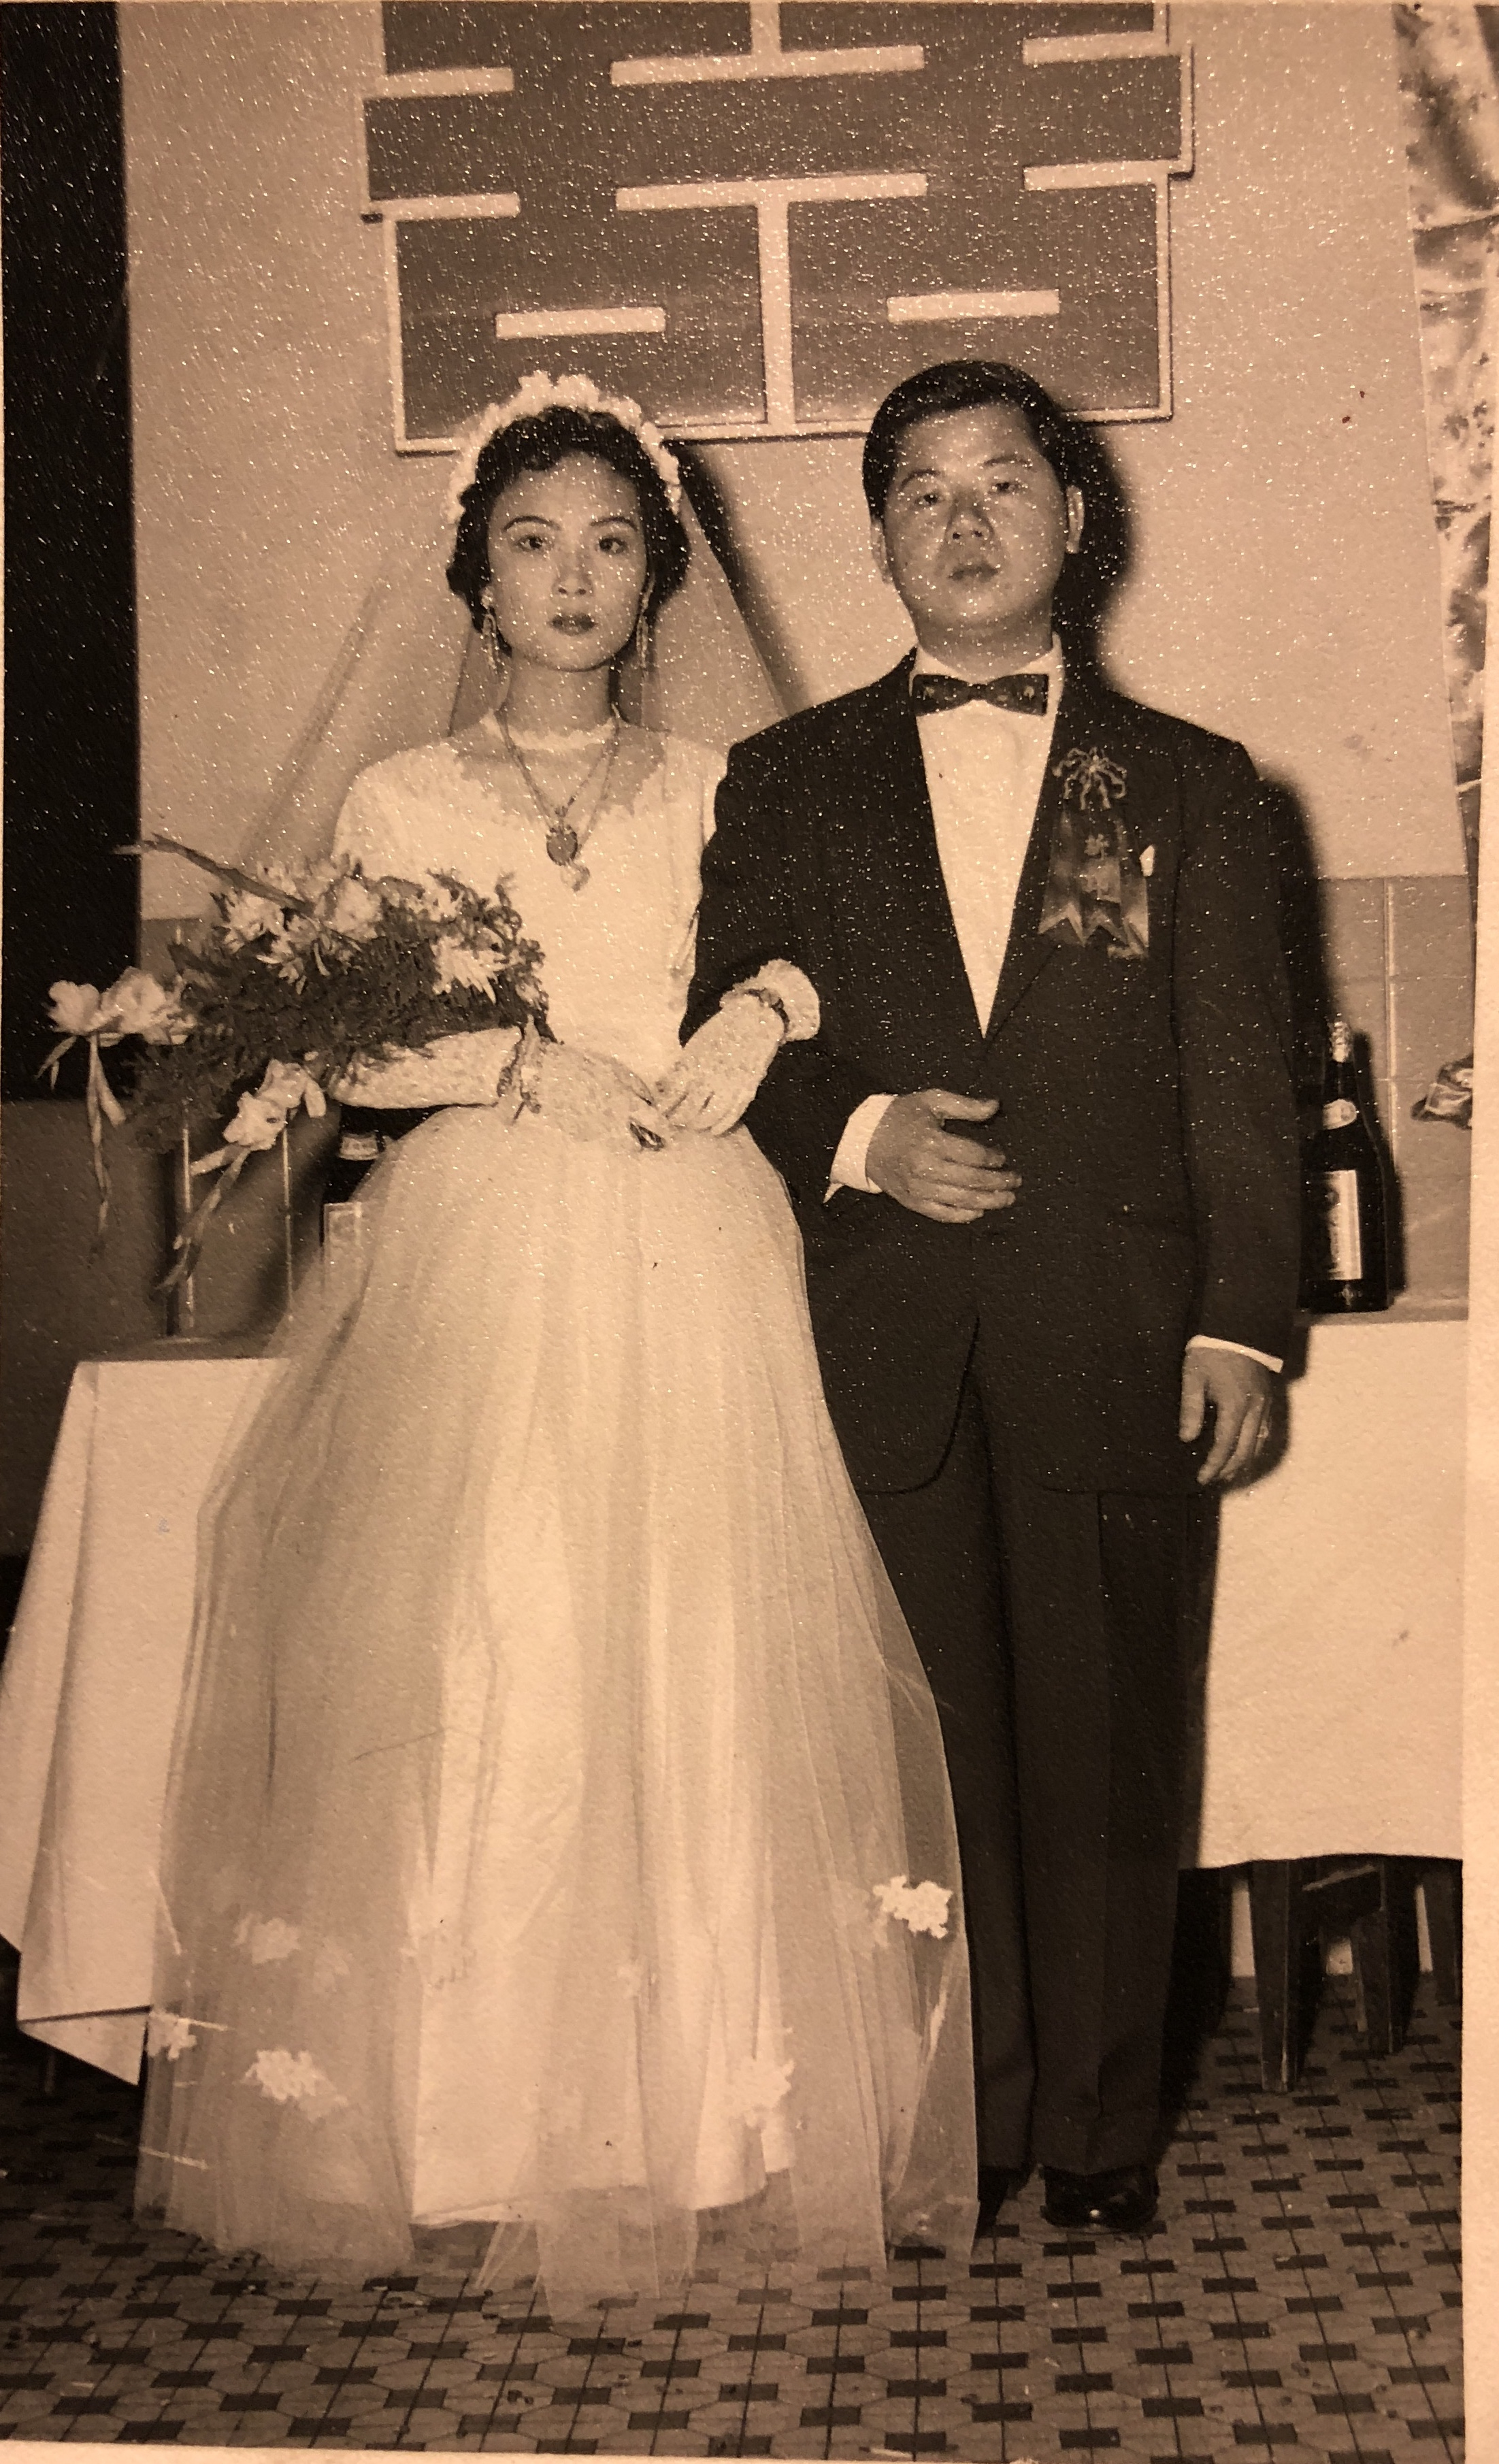 Cynthia's second sister in law,Yu Ching and her paper brother, David Yee, Hong Kong, 1959